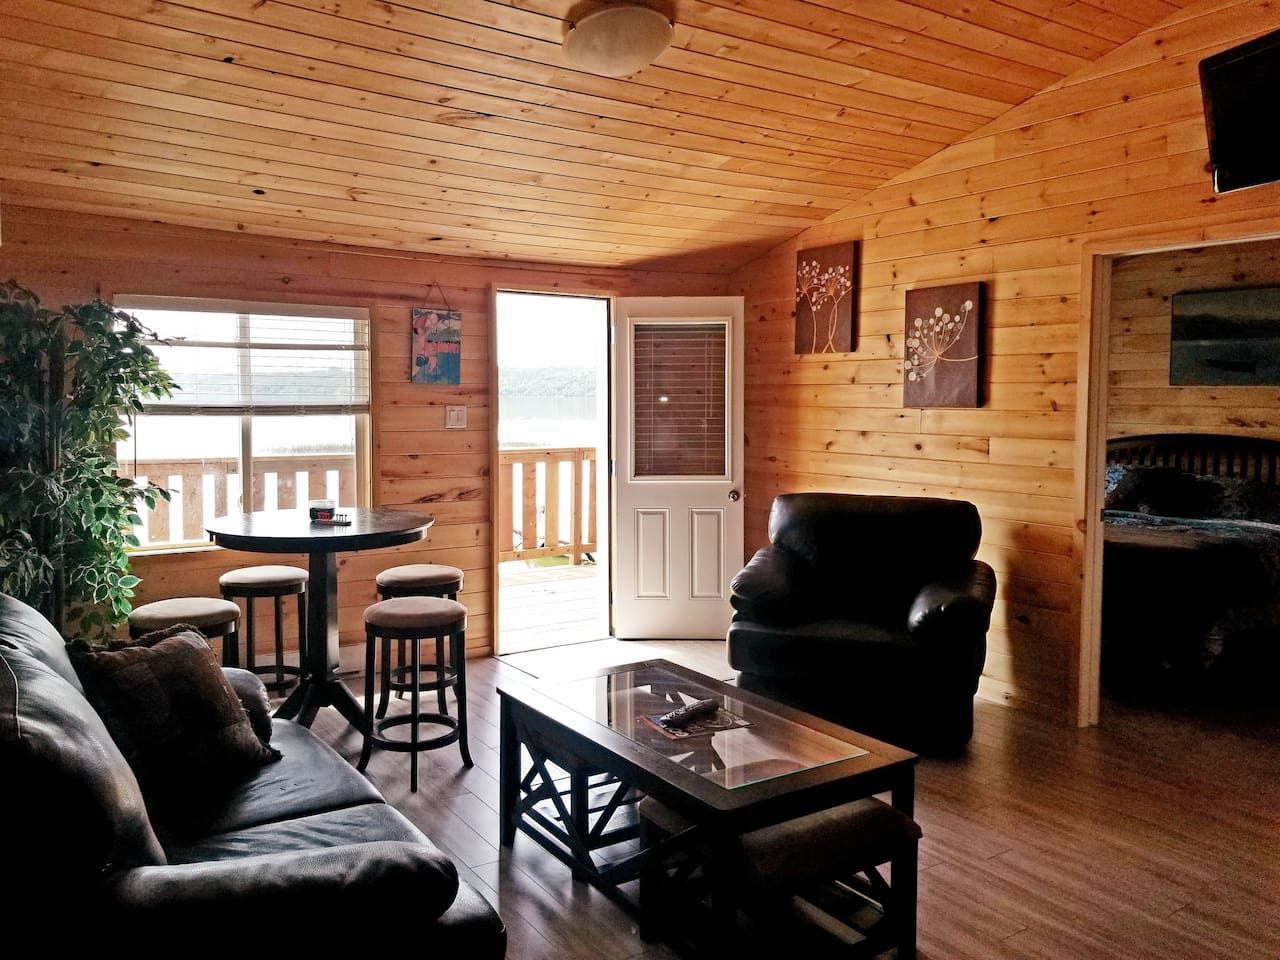 The living room! A great space to visit and enjoy the view!